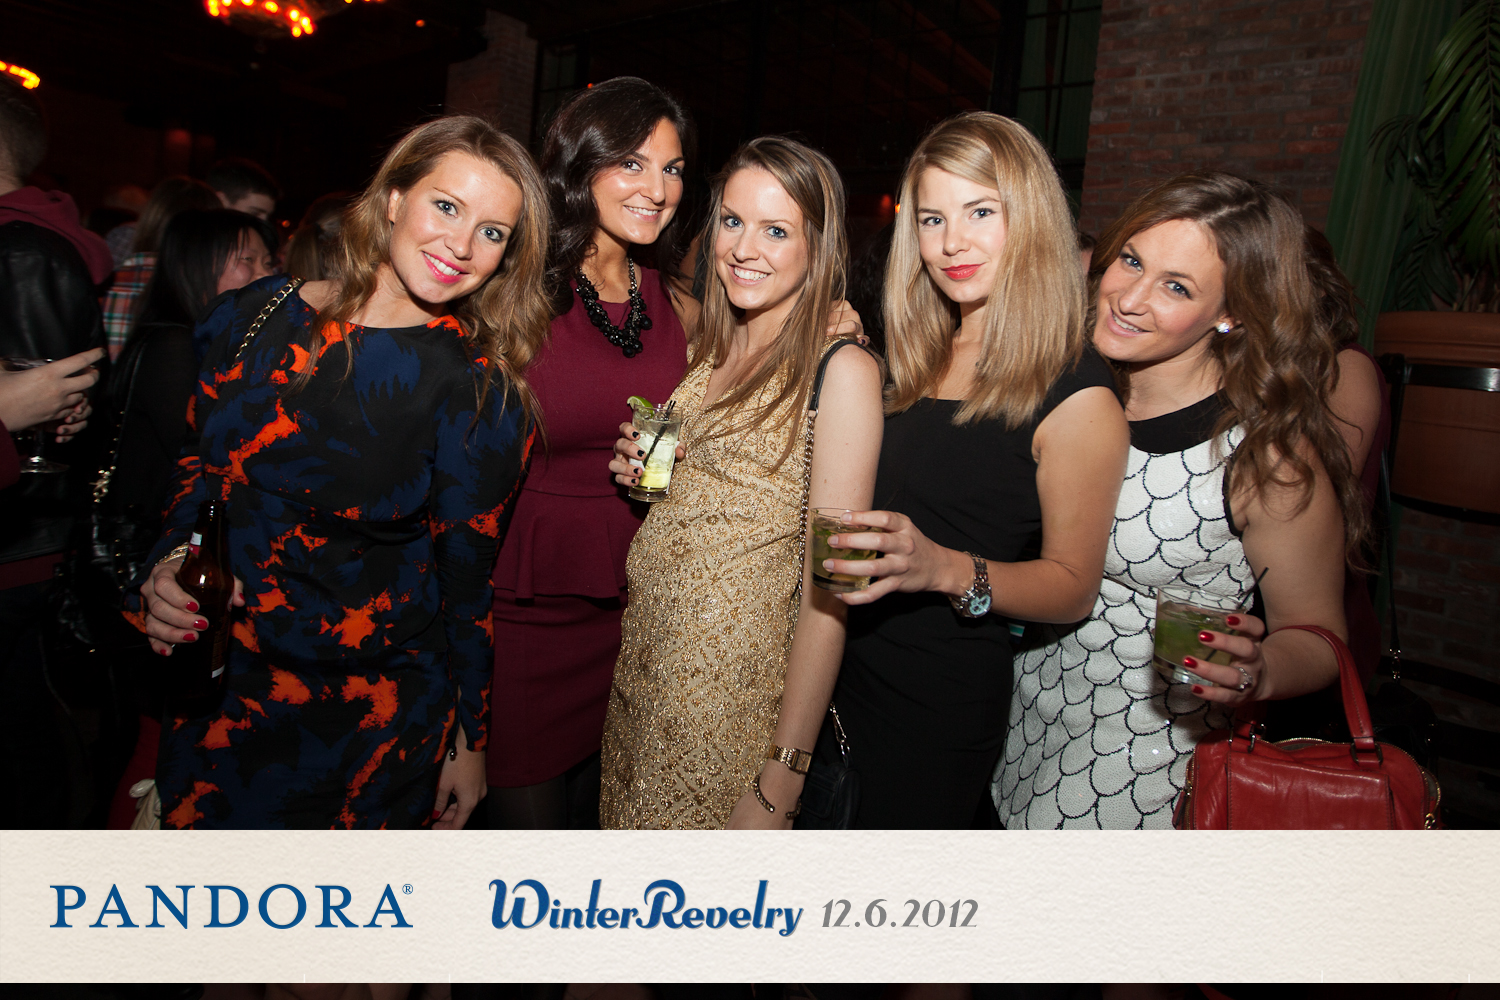 Pandora Winter Revelry at The Bowery Hotel on December 6, 2012